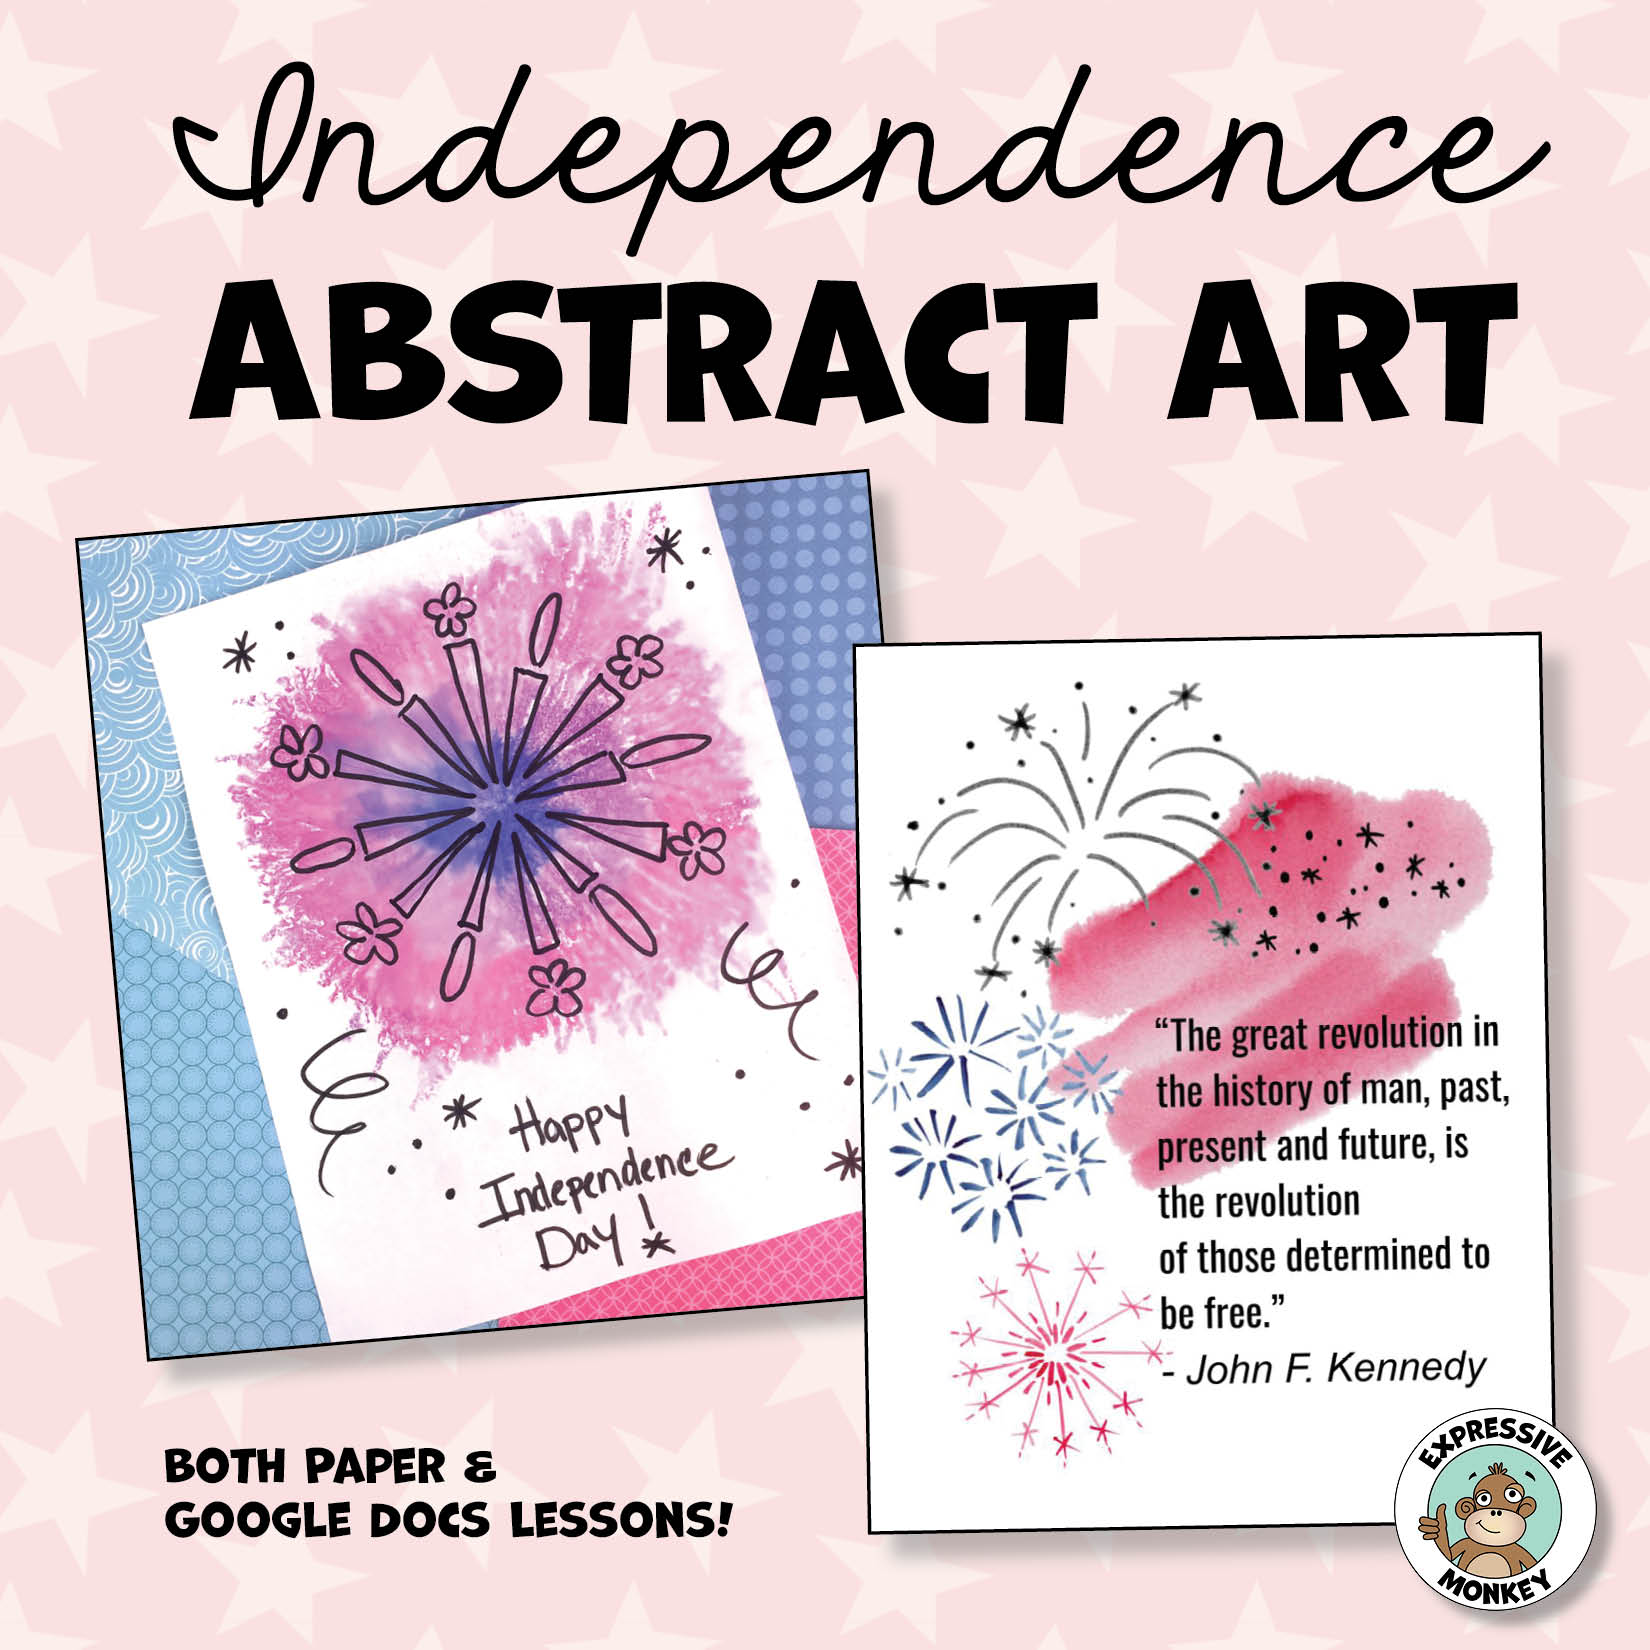 Declaration of Independence - Abstract Art Activity